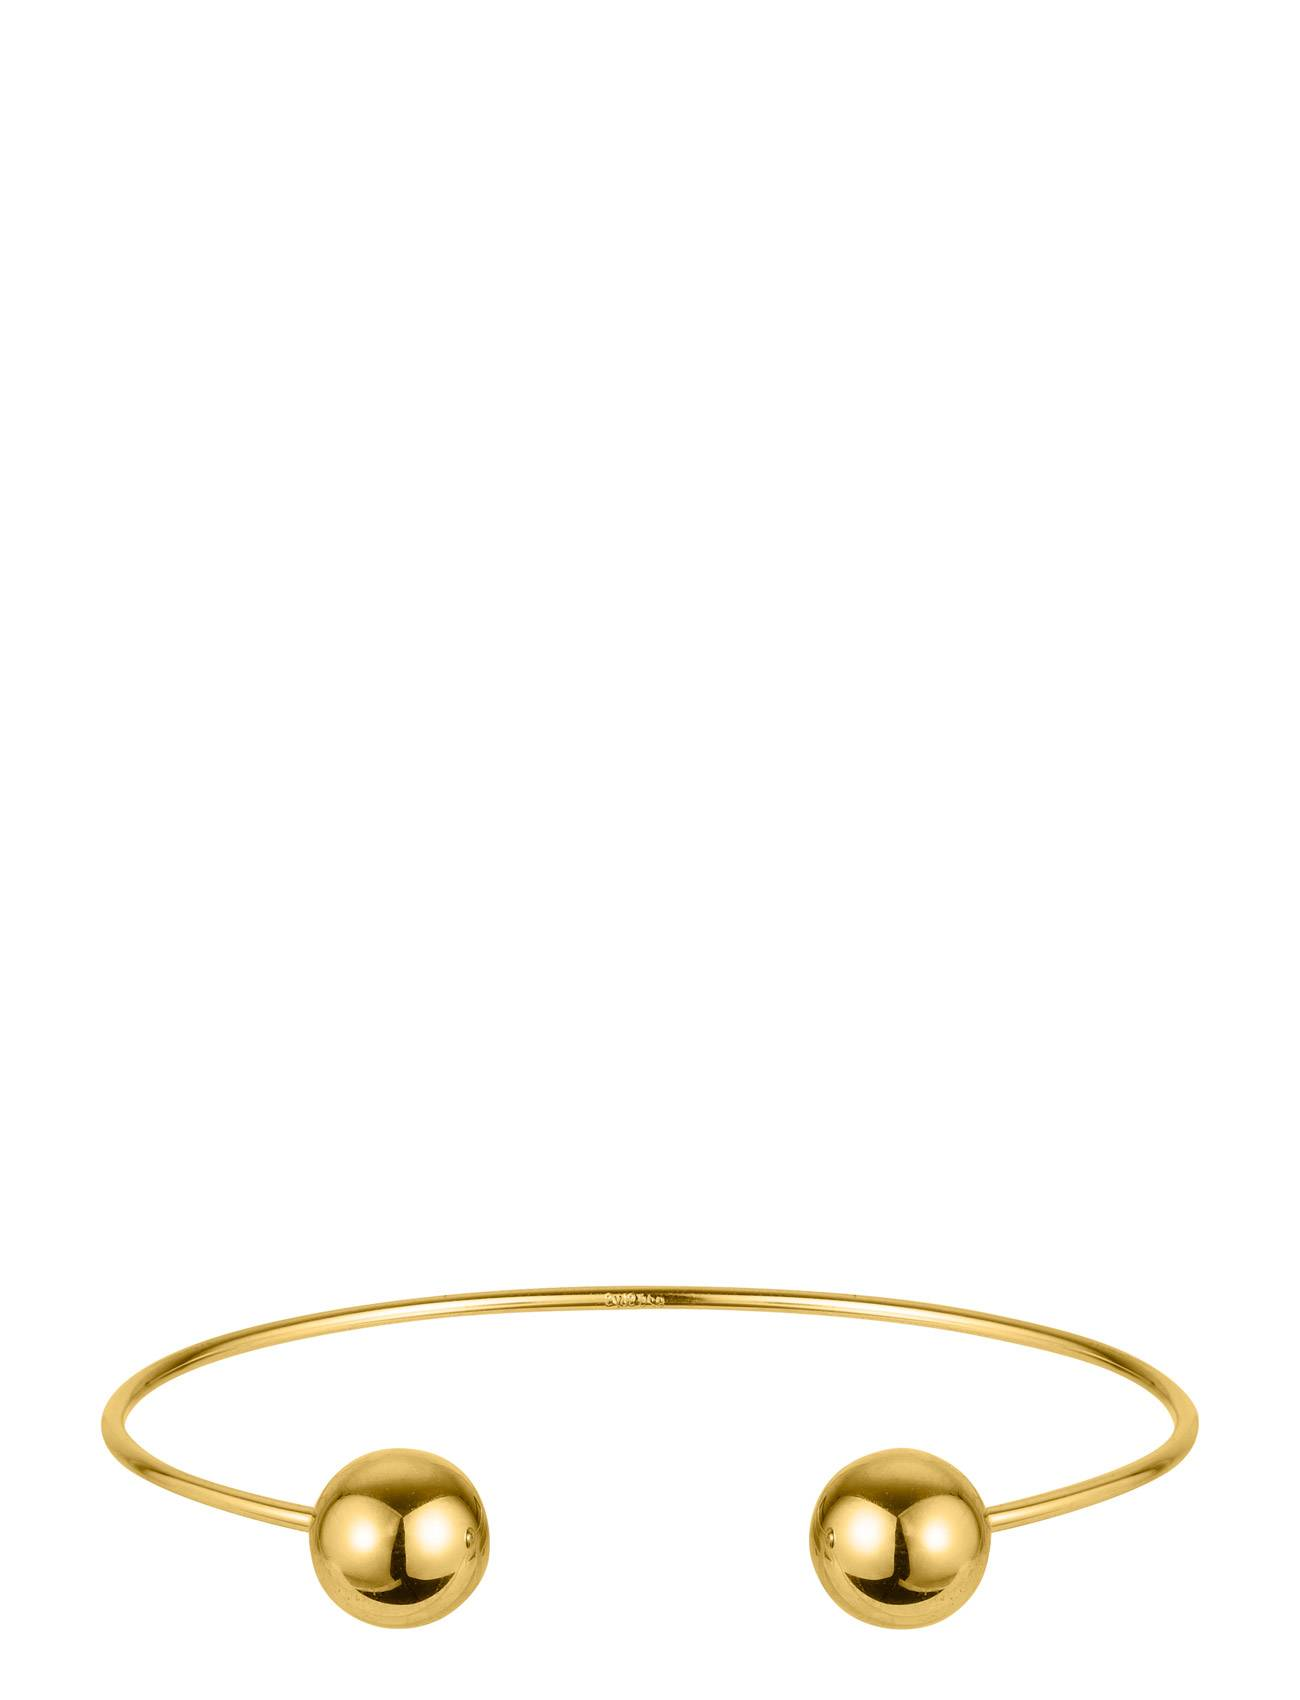 SOPHIE by SOPHIE Planet Cuff